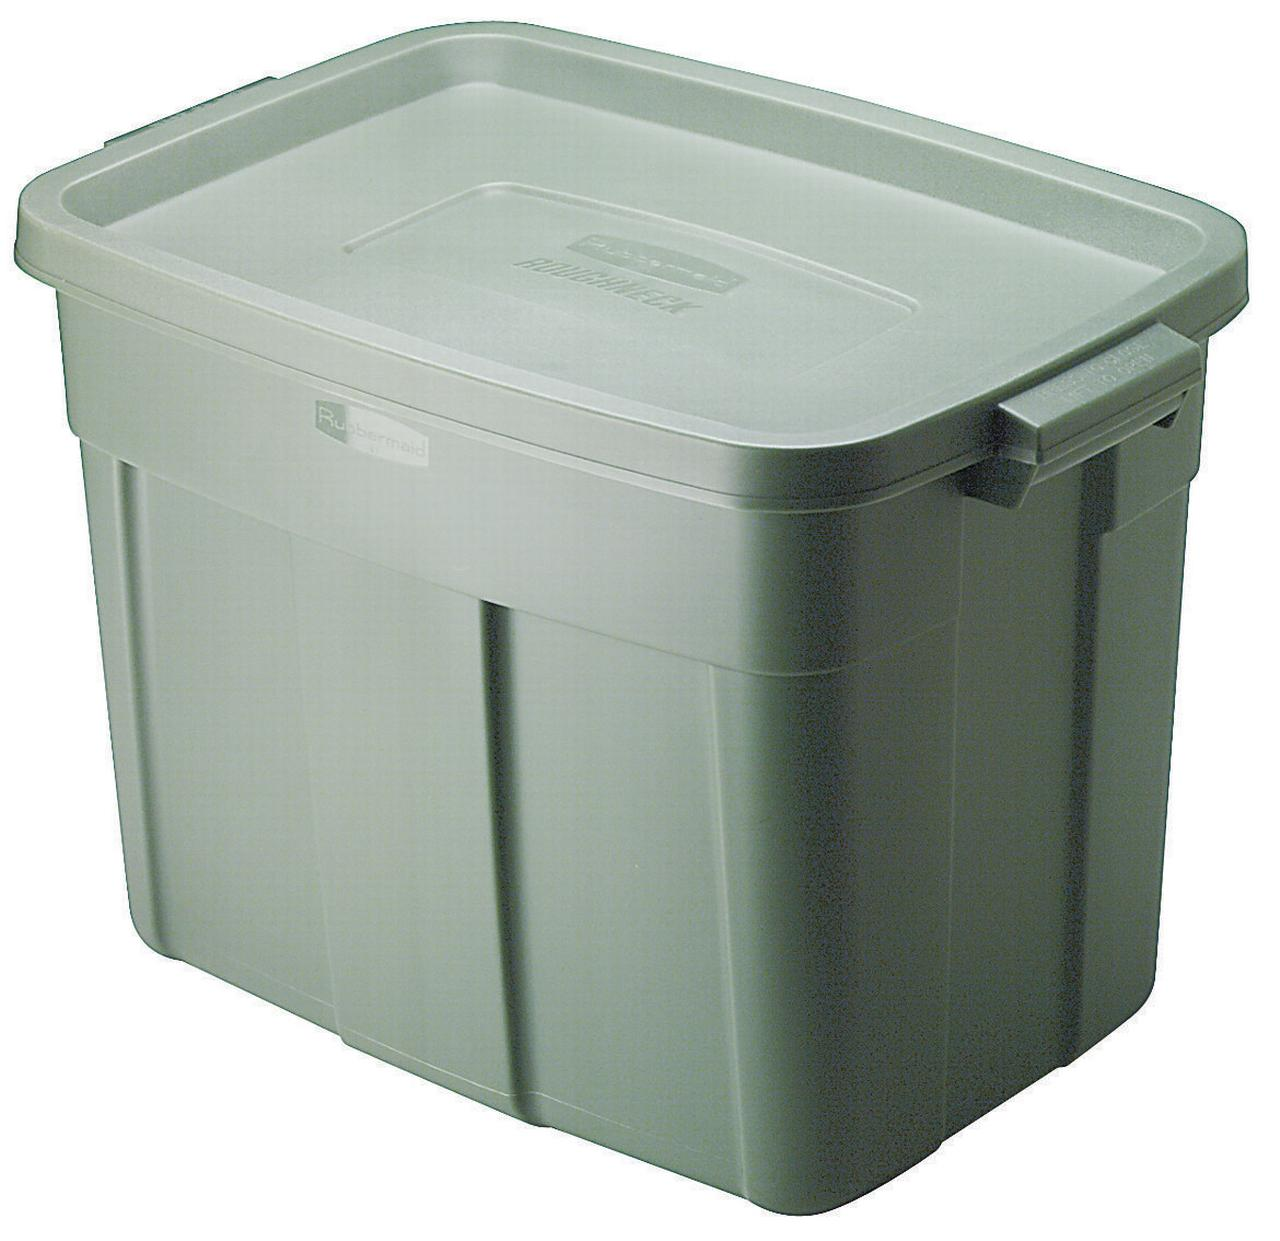 Roughneck FG2215CPSTEEL Storage Tote Box, 18 gal, 23.9 in L x 15.9 in W x 16-1/2 in H, Polyethylene